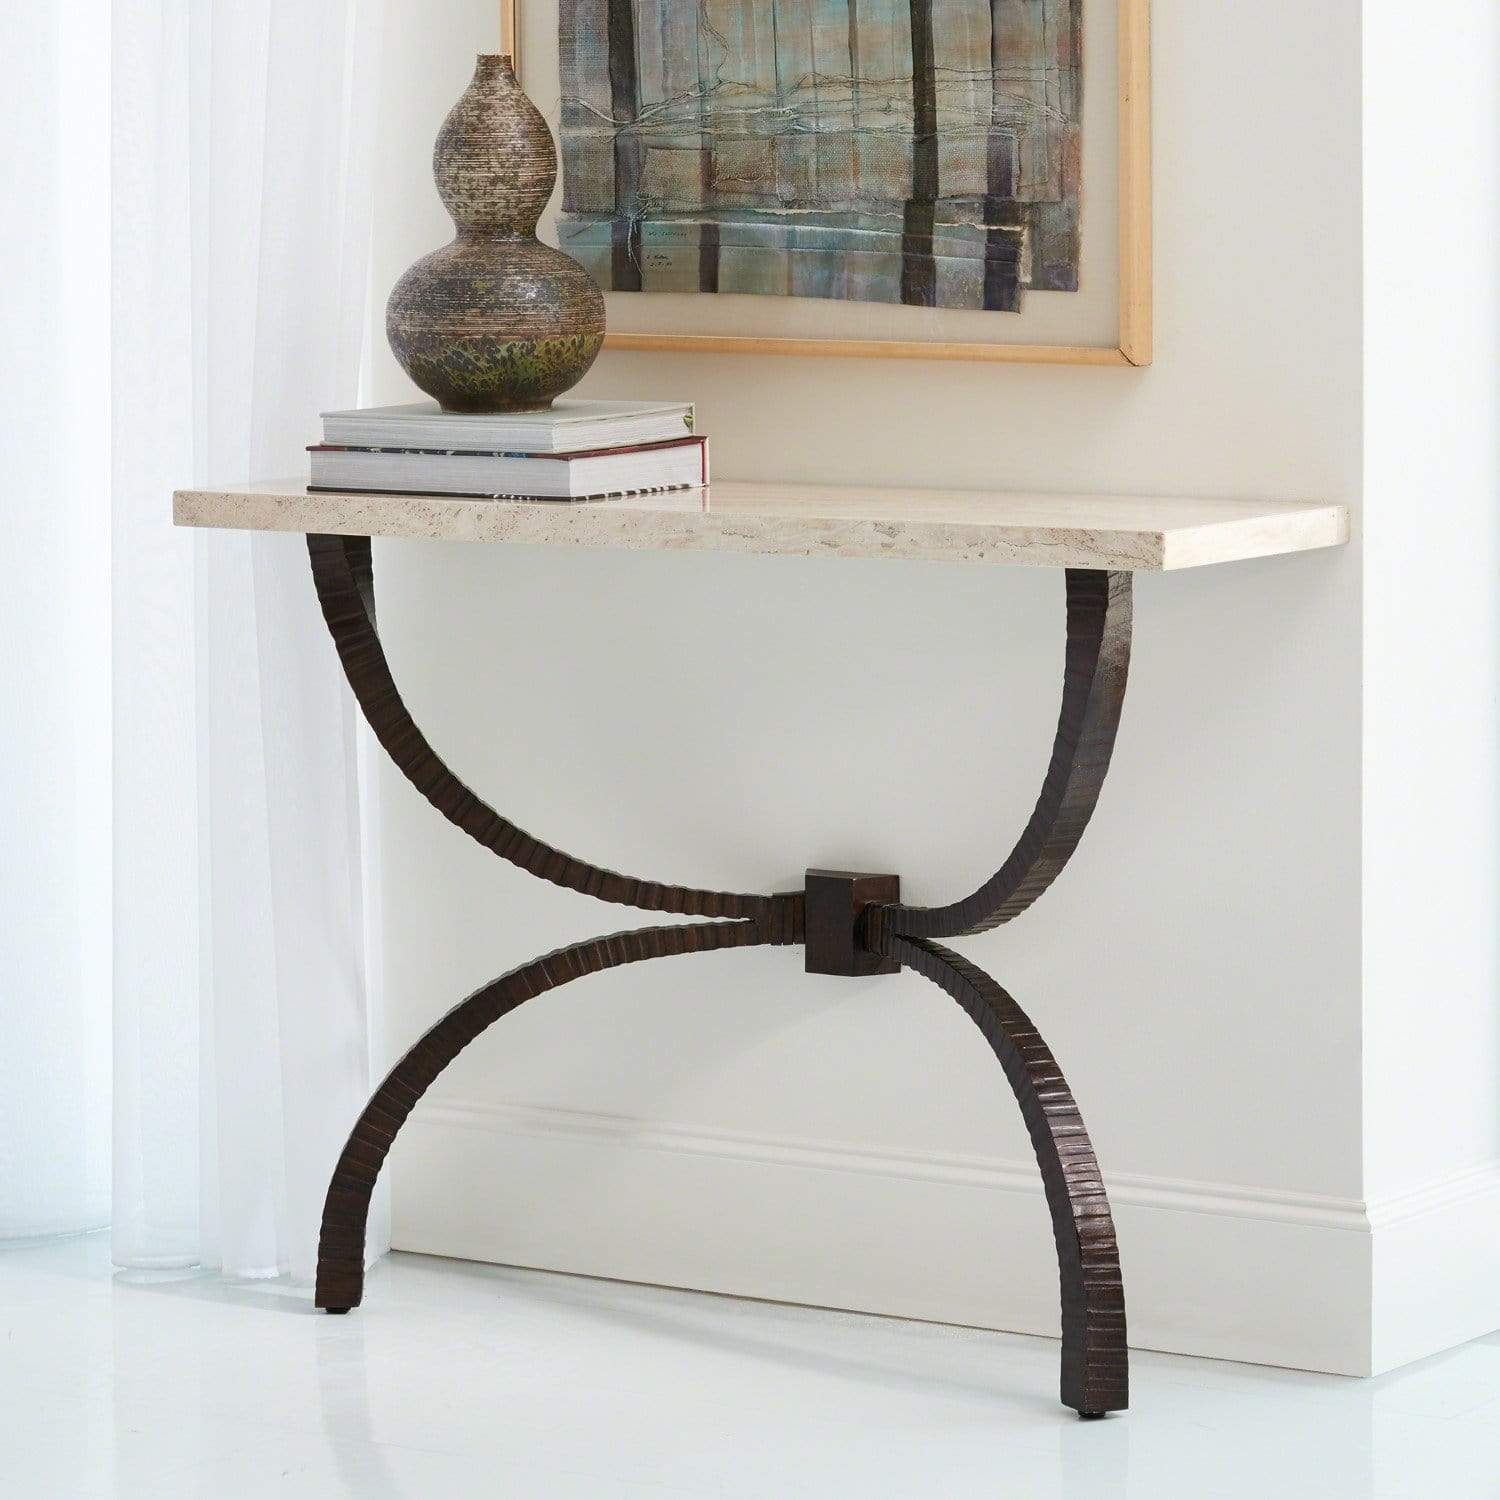 Global Views Global Views Teton Console Bronze with Travertine Top 7.90651